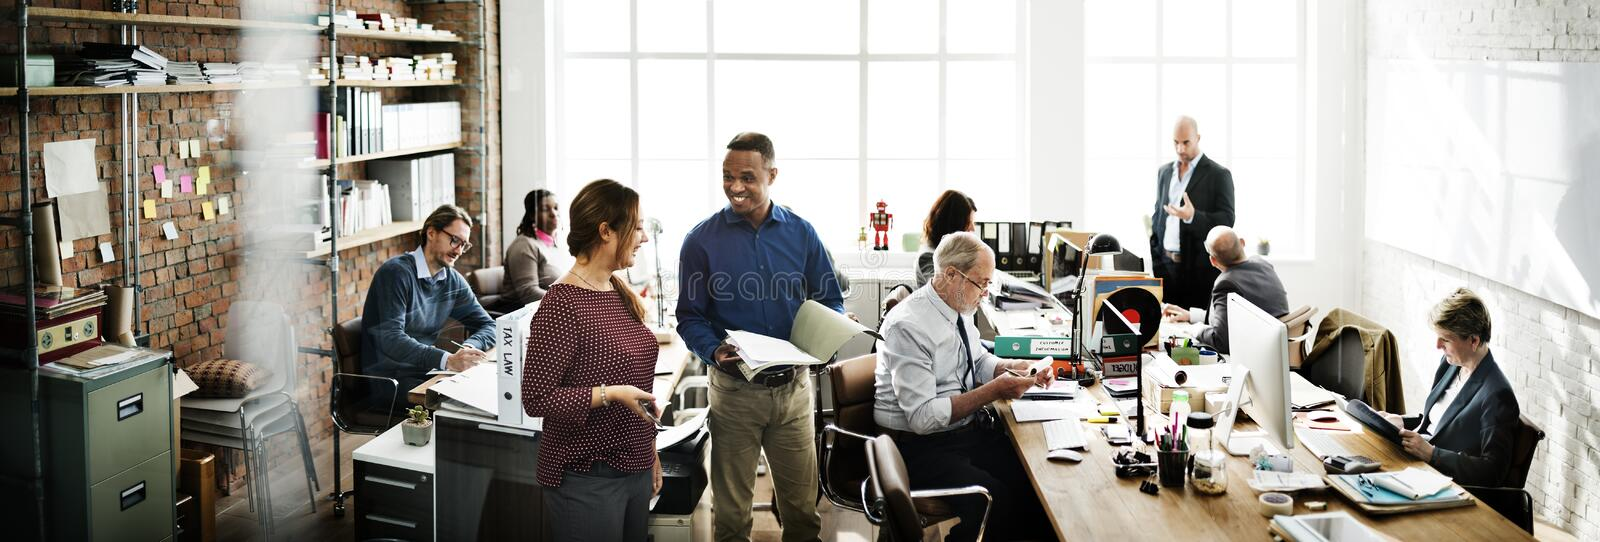 Negócio Team Working Office Worker Concept foto de stock royalty free